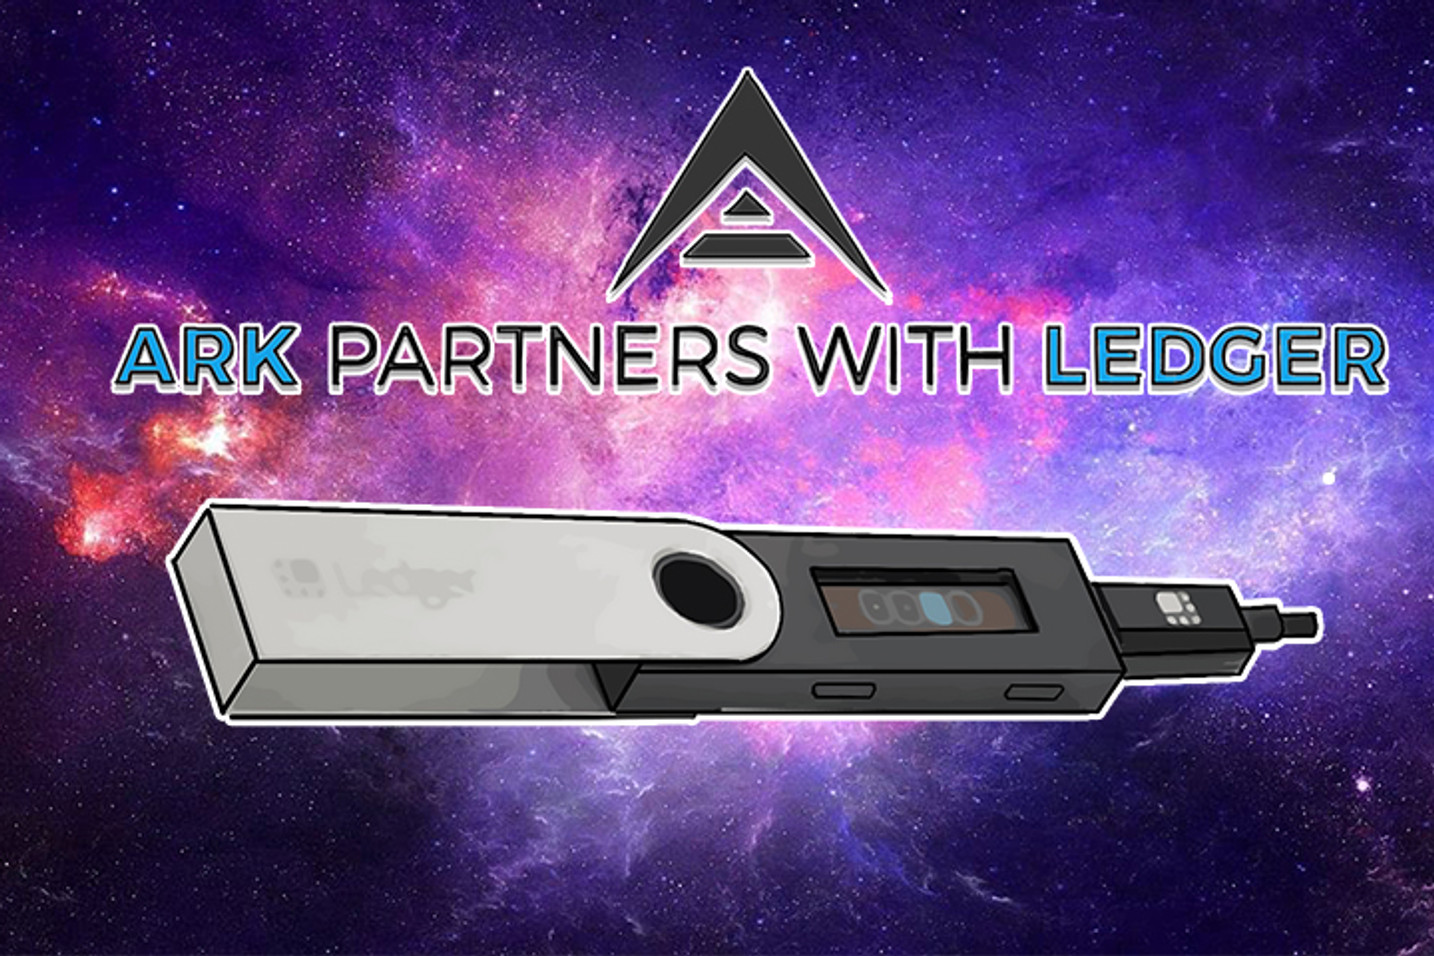 ARK To Be Available On Ledger Hardware Wallet